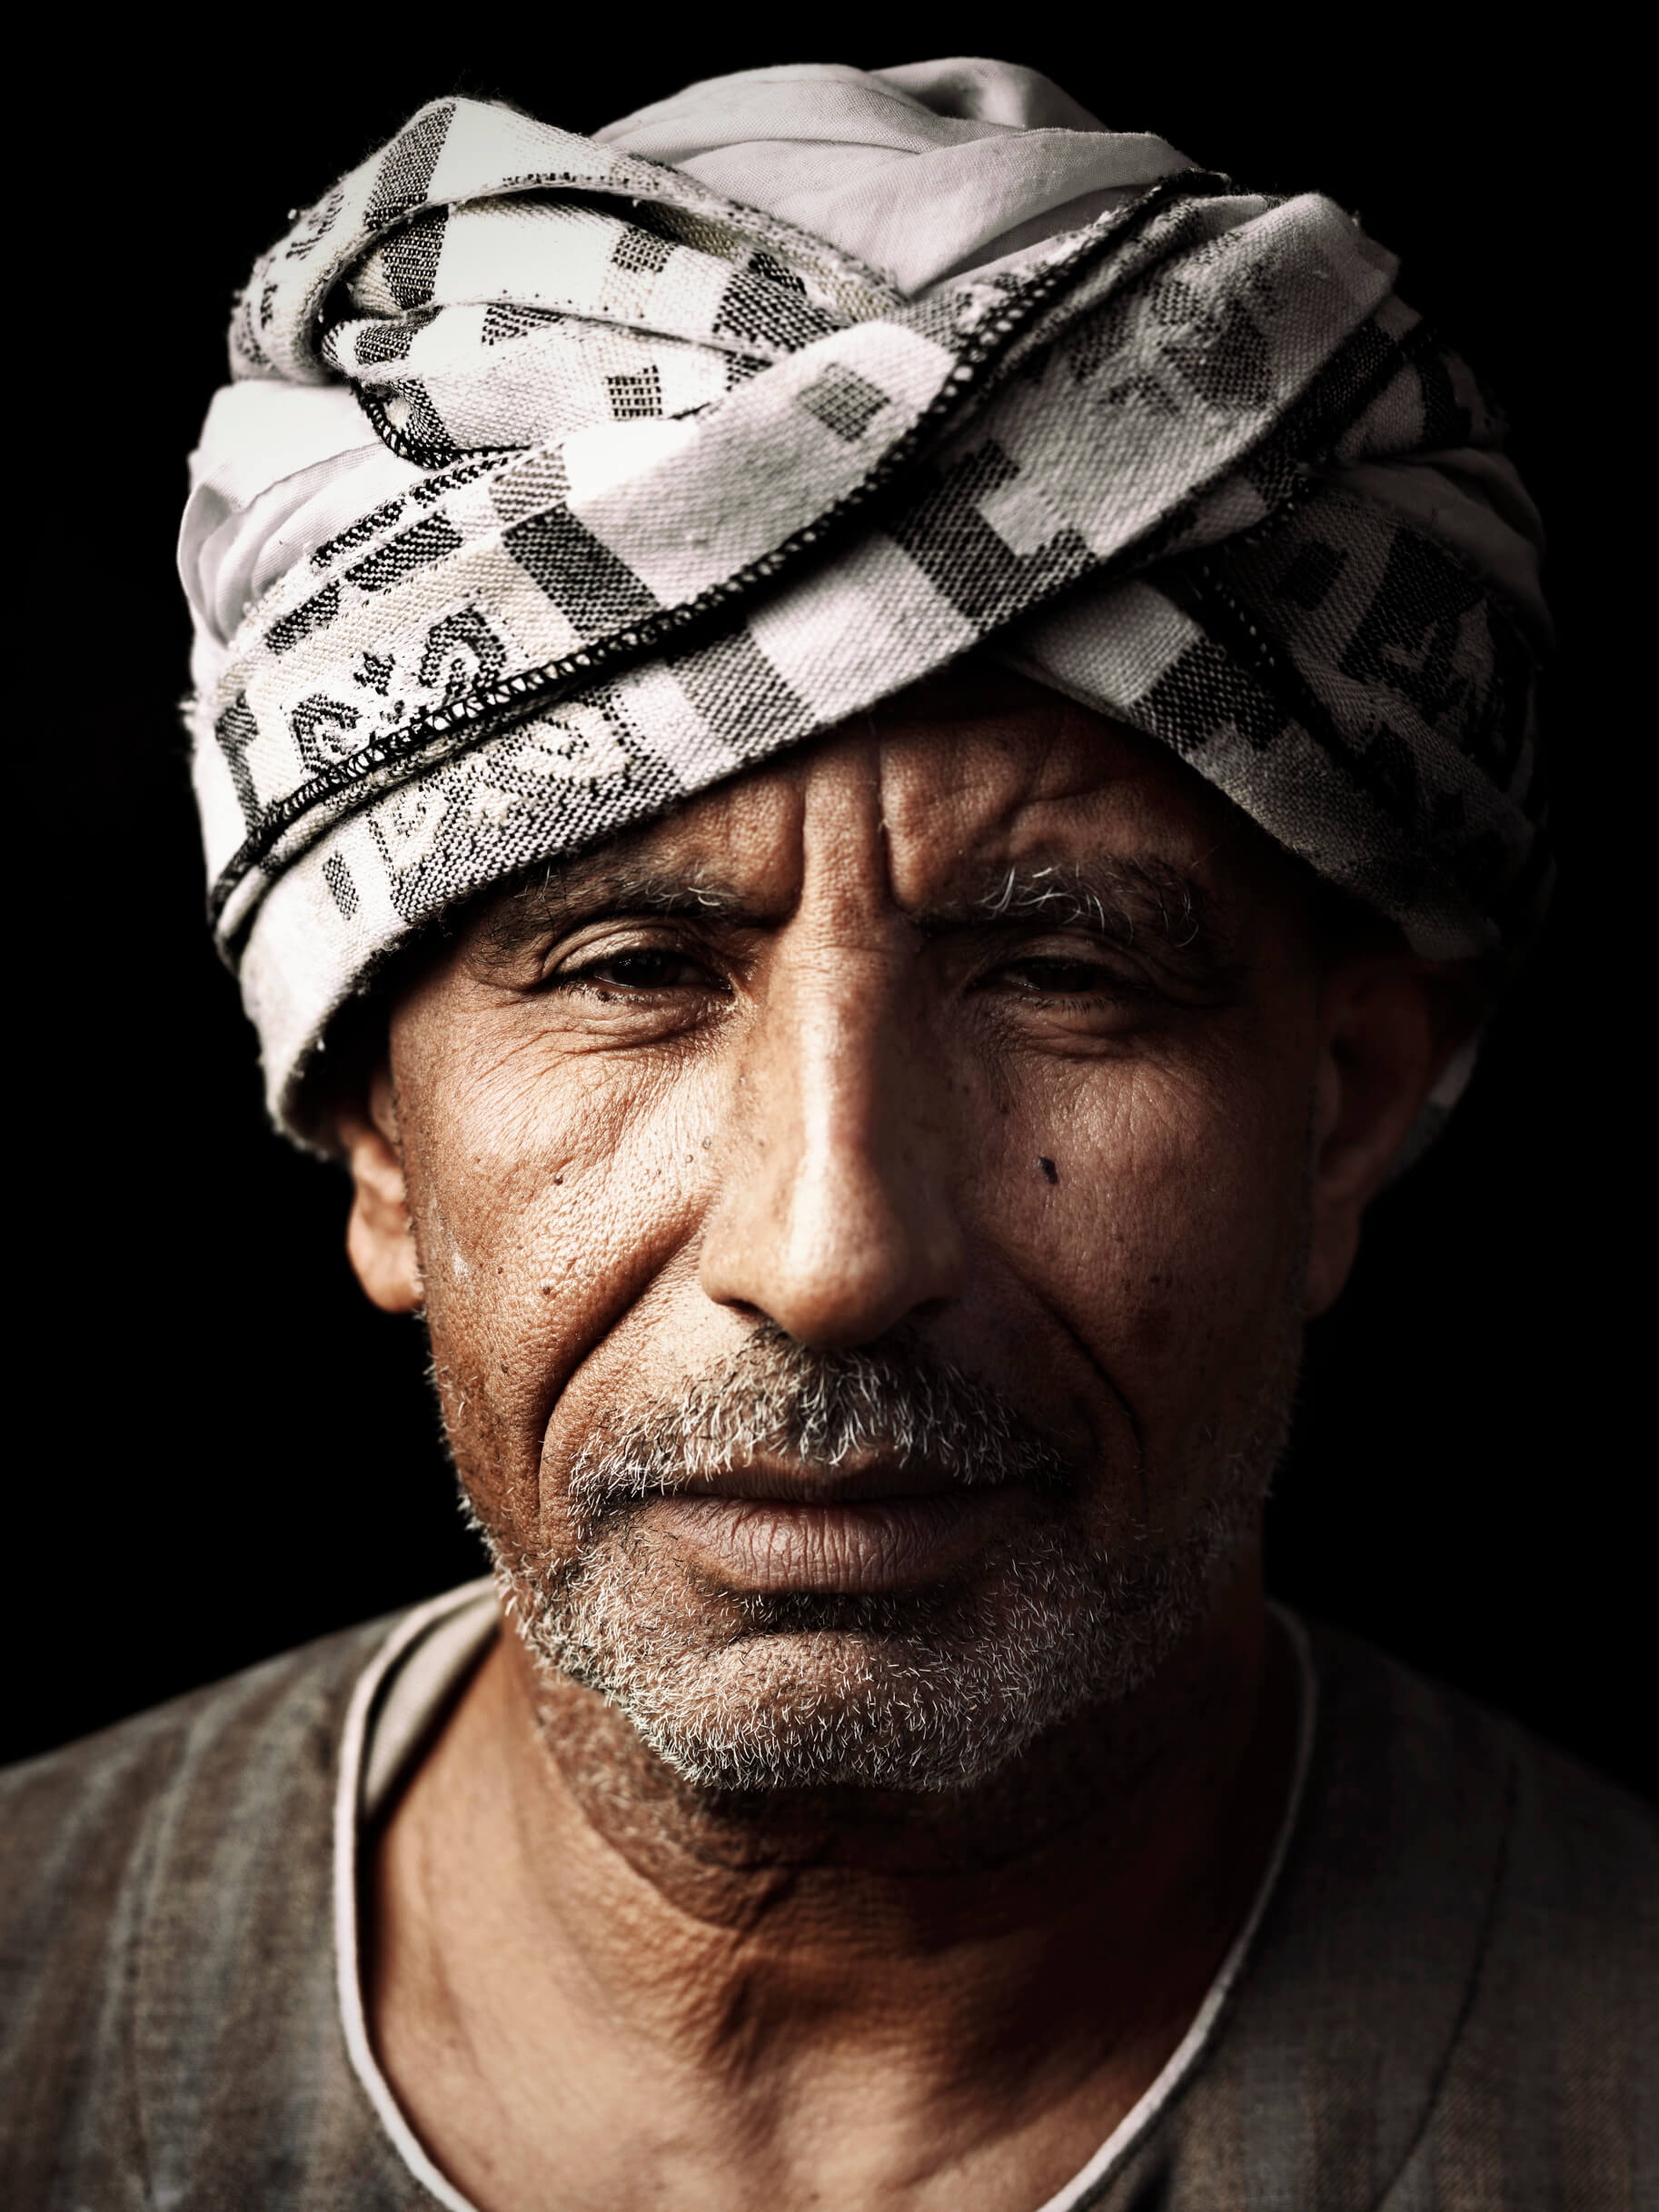 Egypt_People_Portraits_0031